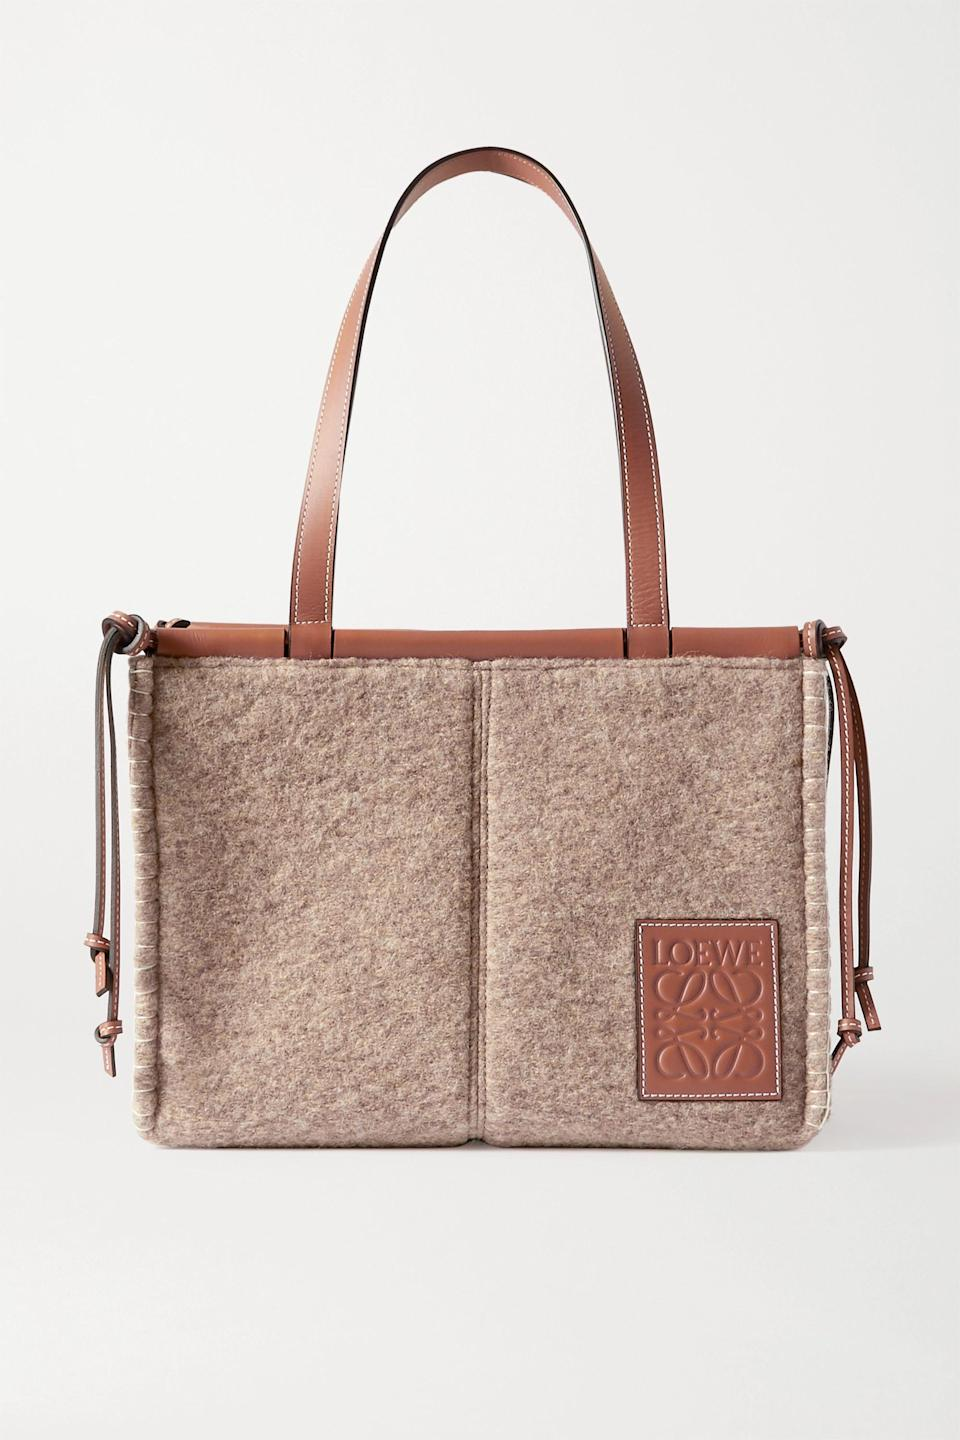 """<p><strong>Loewe</strong></p><p>net-a-porter.com</p><p><strong>$1200.00</strong></p><p><a href=""""https://go.redirectingat.com?id=74968X1596630&url=https%3A%2F%2Fwww.net-a-porter.com%2Fen-us%2Fshop%2Fproduct%2Floewe%2Fcushion-small-leather-trimmed-felt-tote%2F1296175&sref=https%3A%2F%2Fwww.harpersbazaar.com%2Ffashion%2Fg34046218%2Fspring-2021-bag-trends%2F"""" rel=""""nofollow noopener"""" target=""""_blank"""" data-ylk=""""slk:Shop Now"""" class=""""link rapid-noclick-resp"""">Shop Now</a></p><p>This bag gives us the same vibes as Loewe's famed woven bags, but for all-year-round.</p>"""